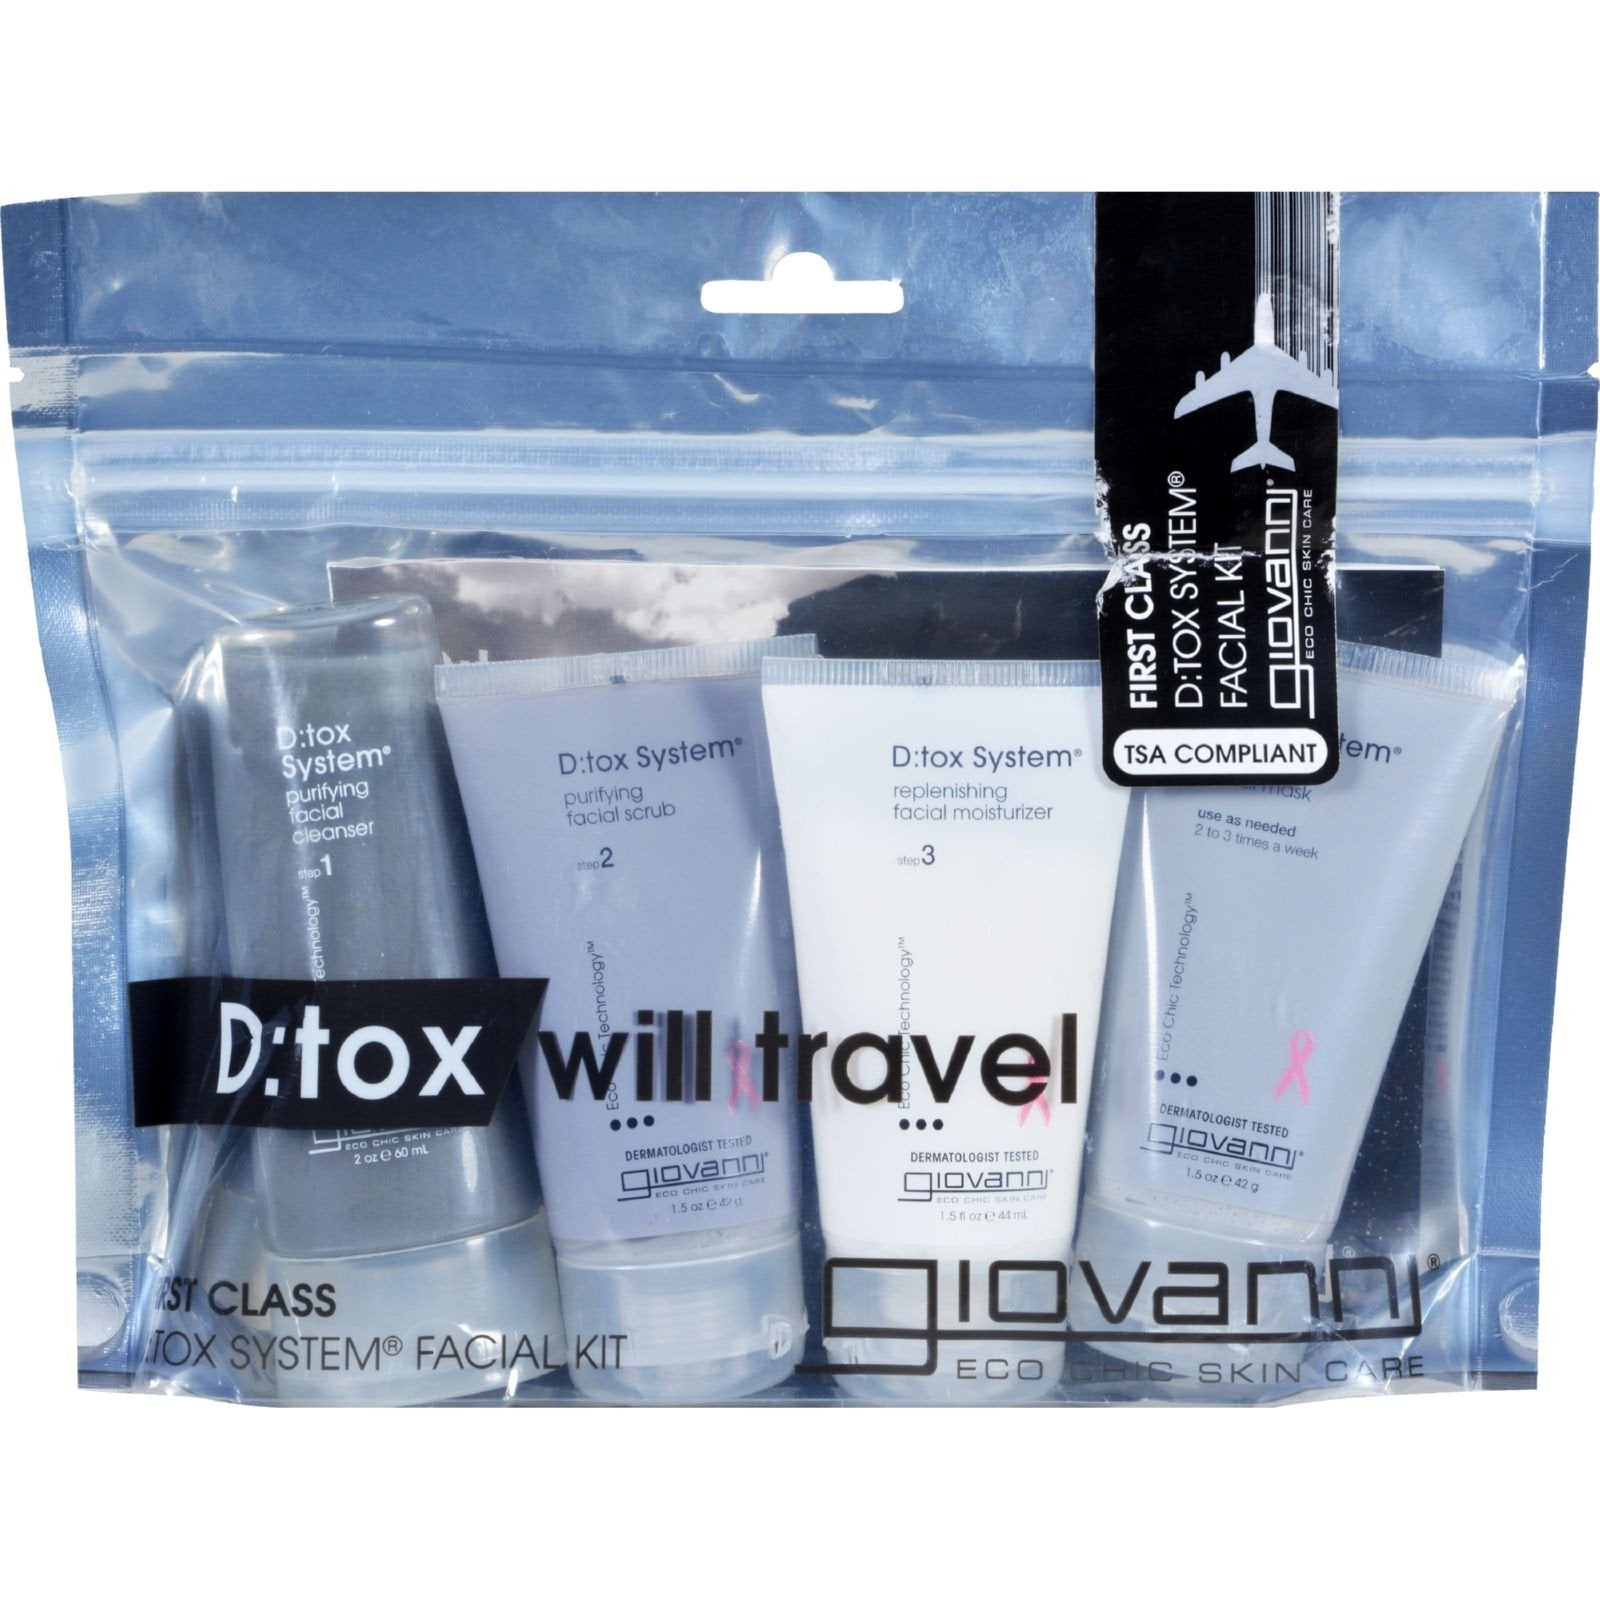 Giovanni Hair Care Products DeTox System Travel Kit